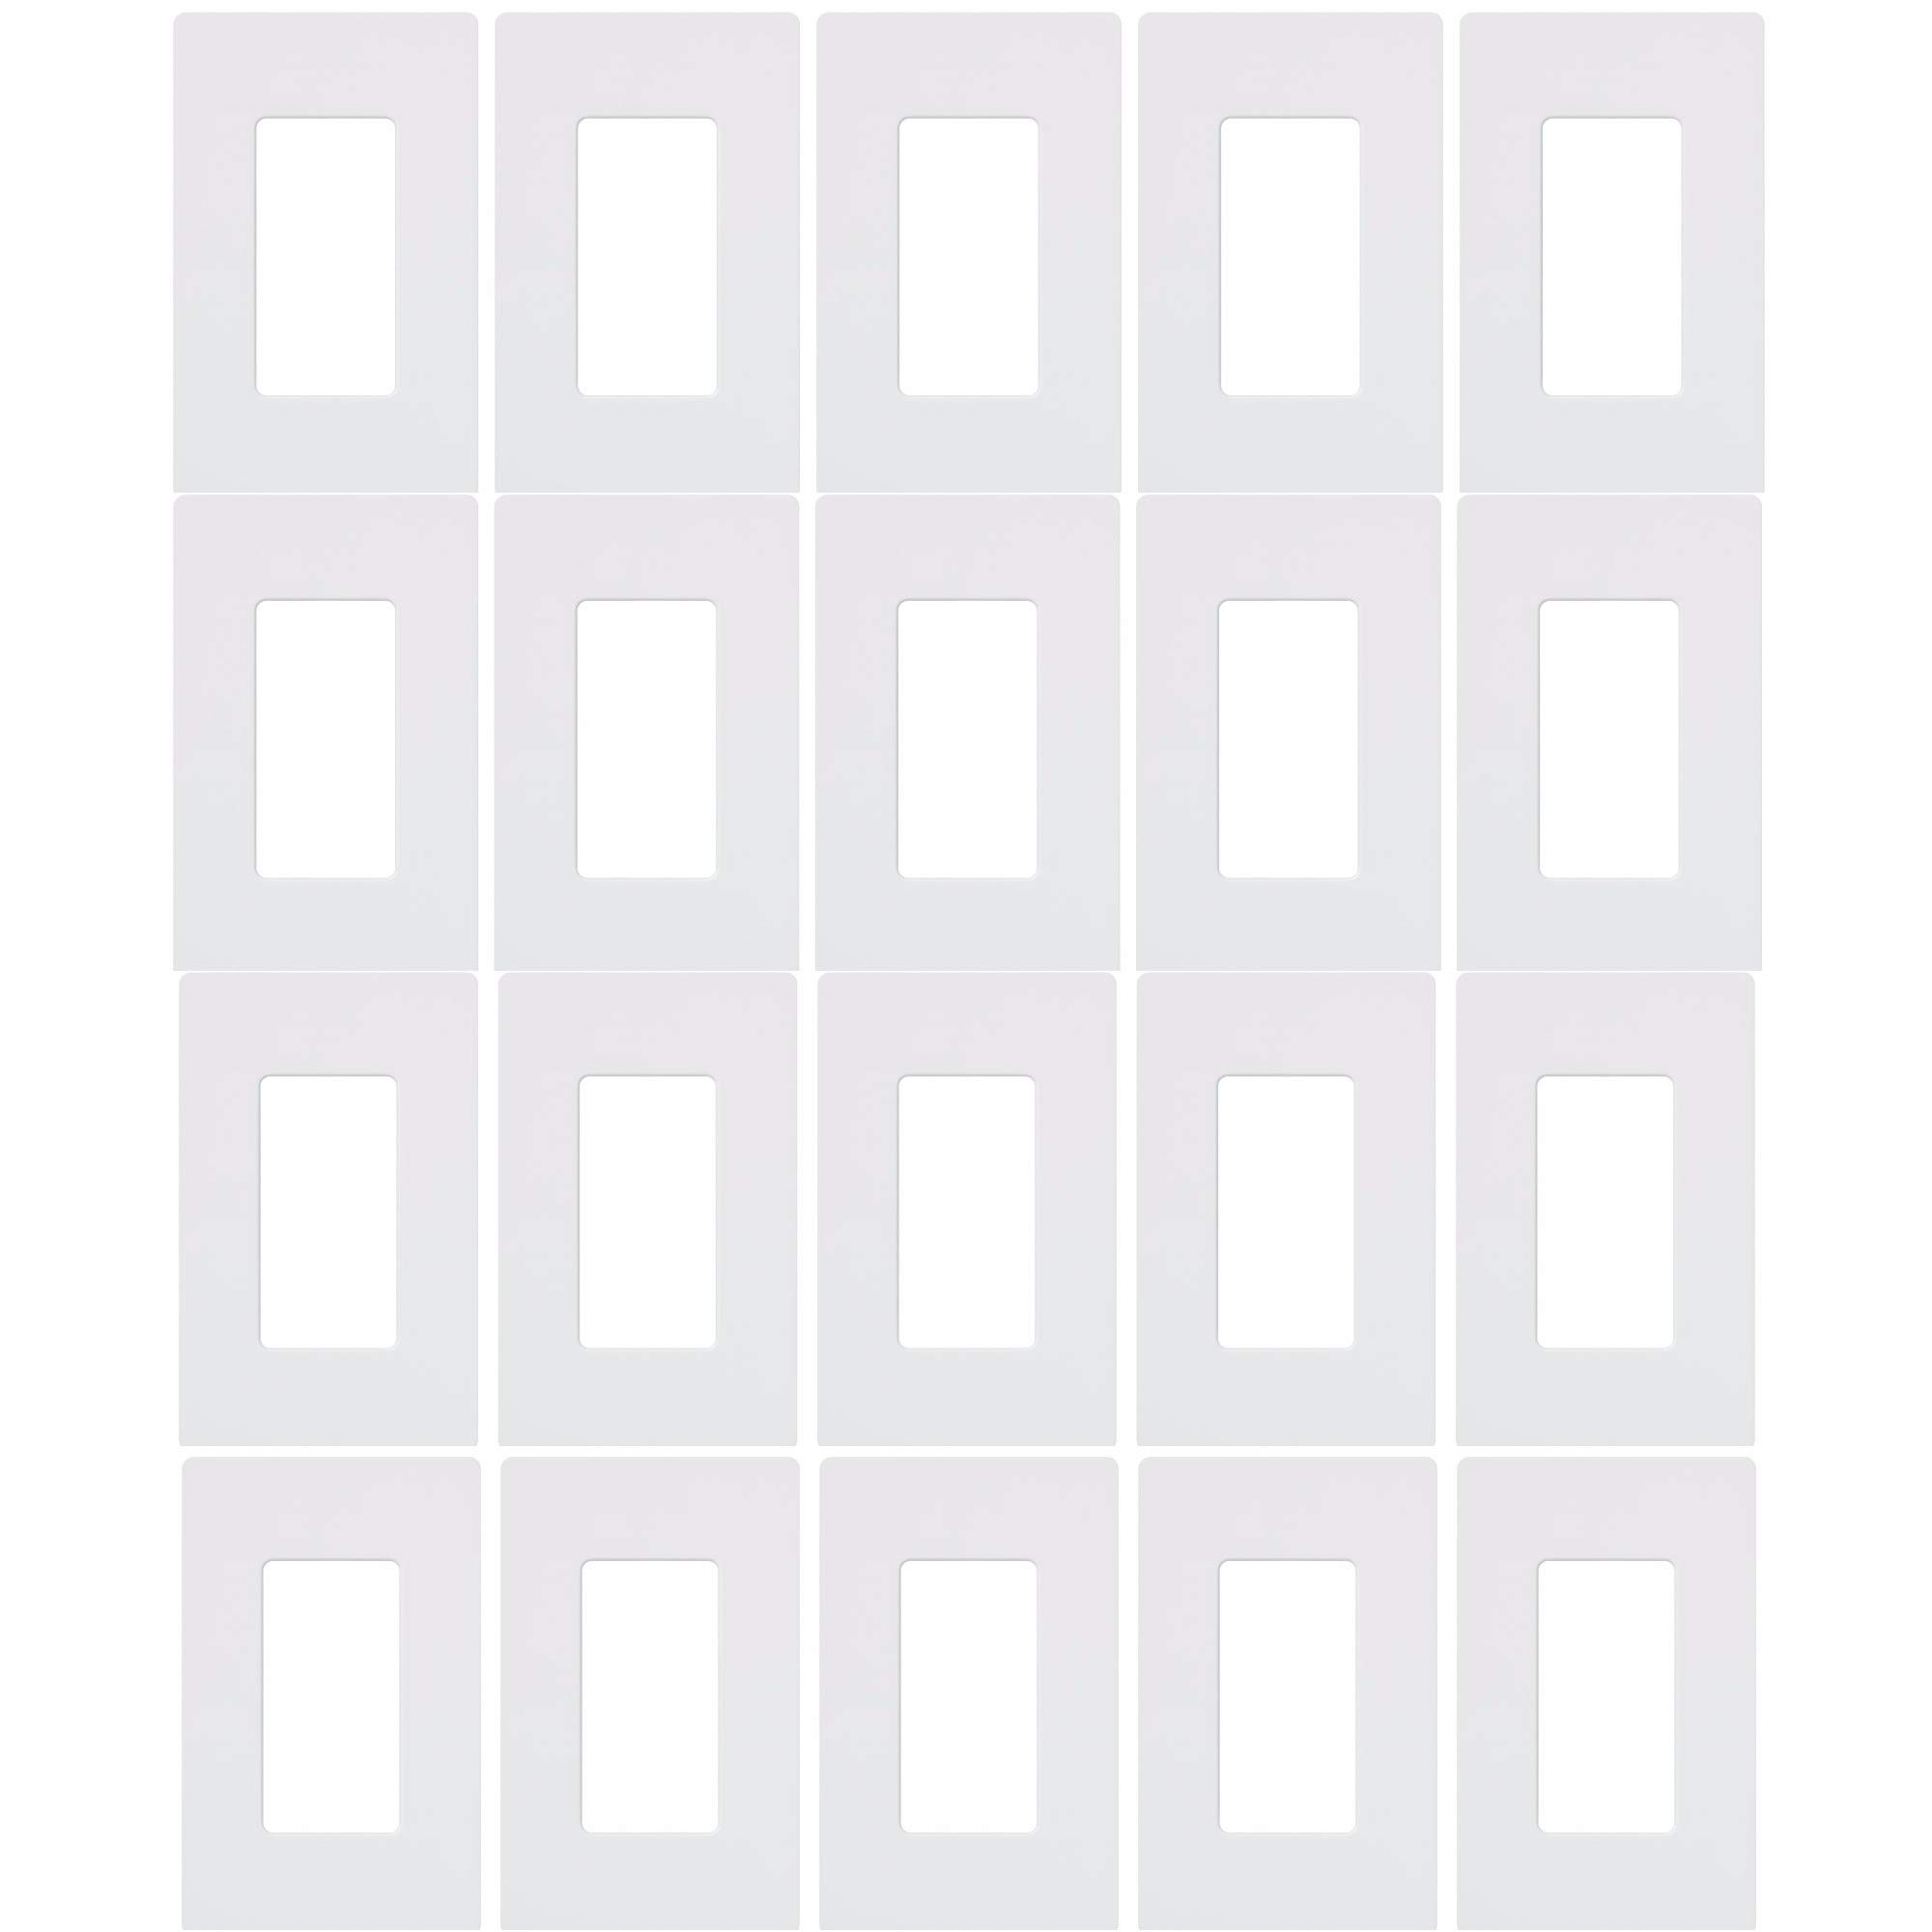 Lutron CW-1-WH 1-Gang Claro Screw-Less Wall Plate, White (20 Pack)